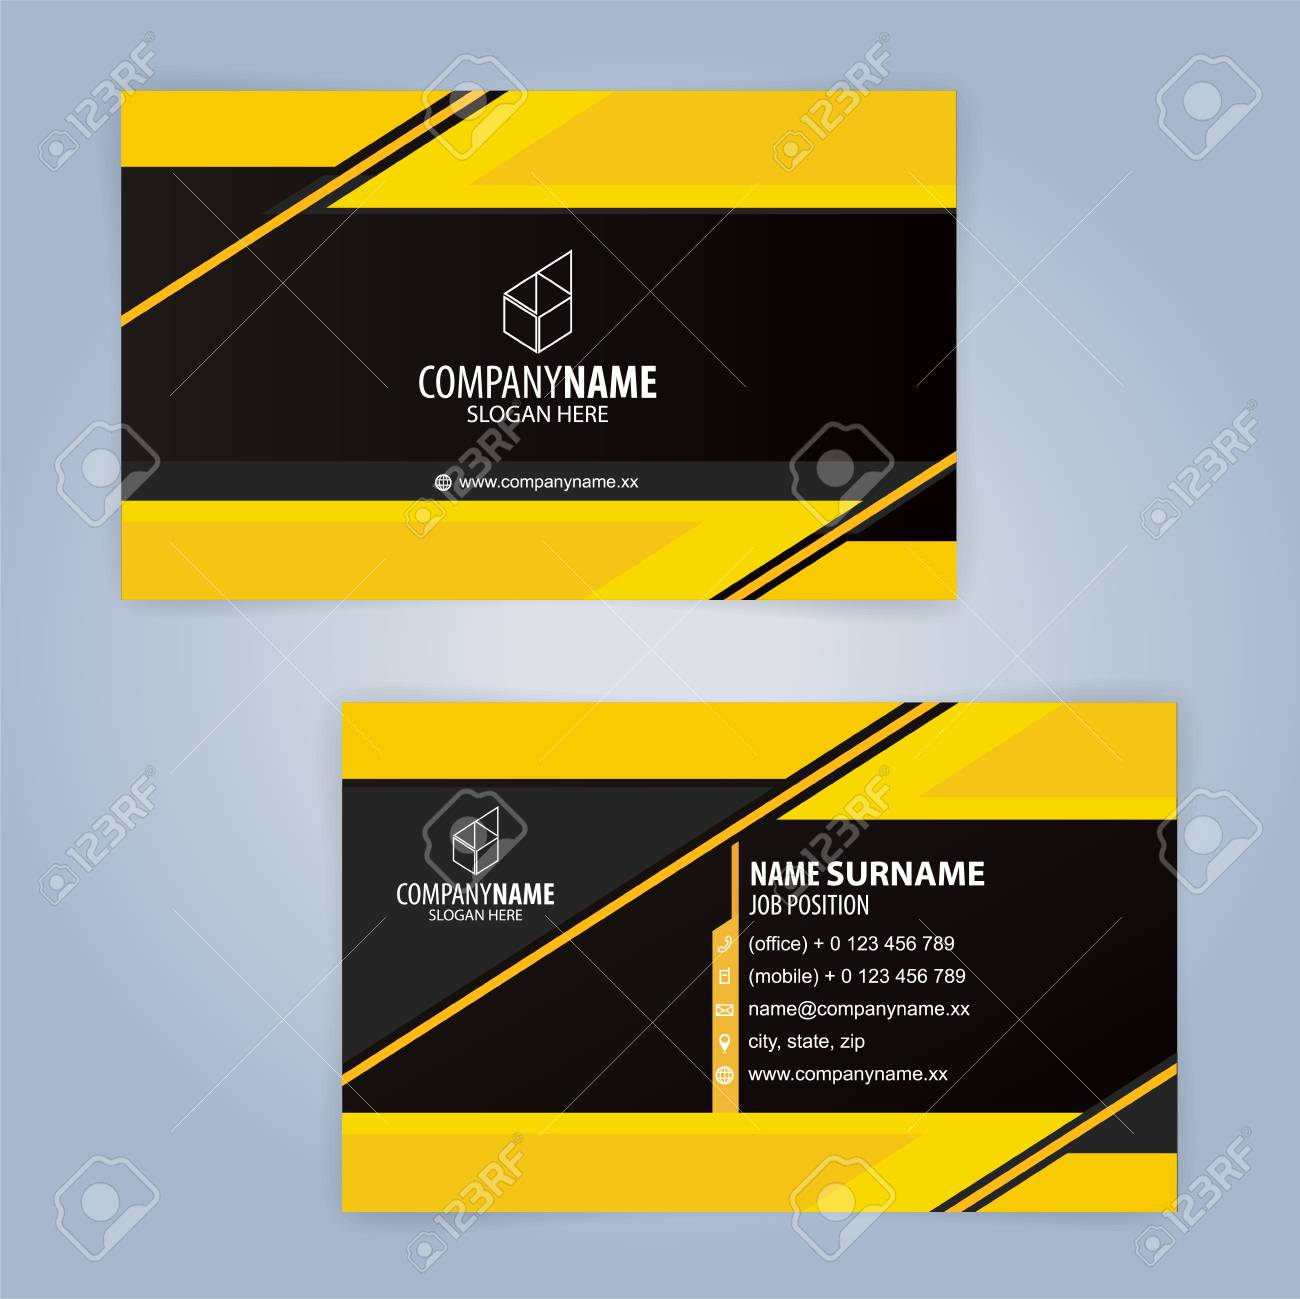 Yellow and black modern business card template illustration vector banco de imagens yellow and black modern business card template illustration vector 10 reheart Images